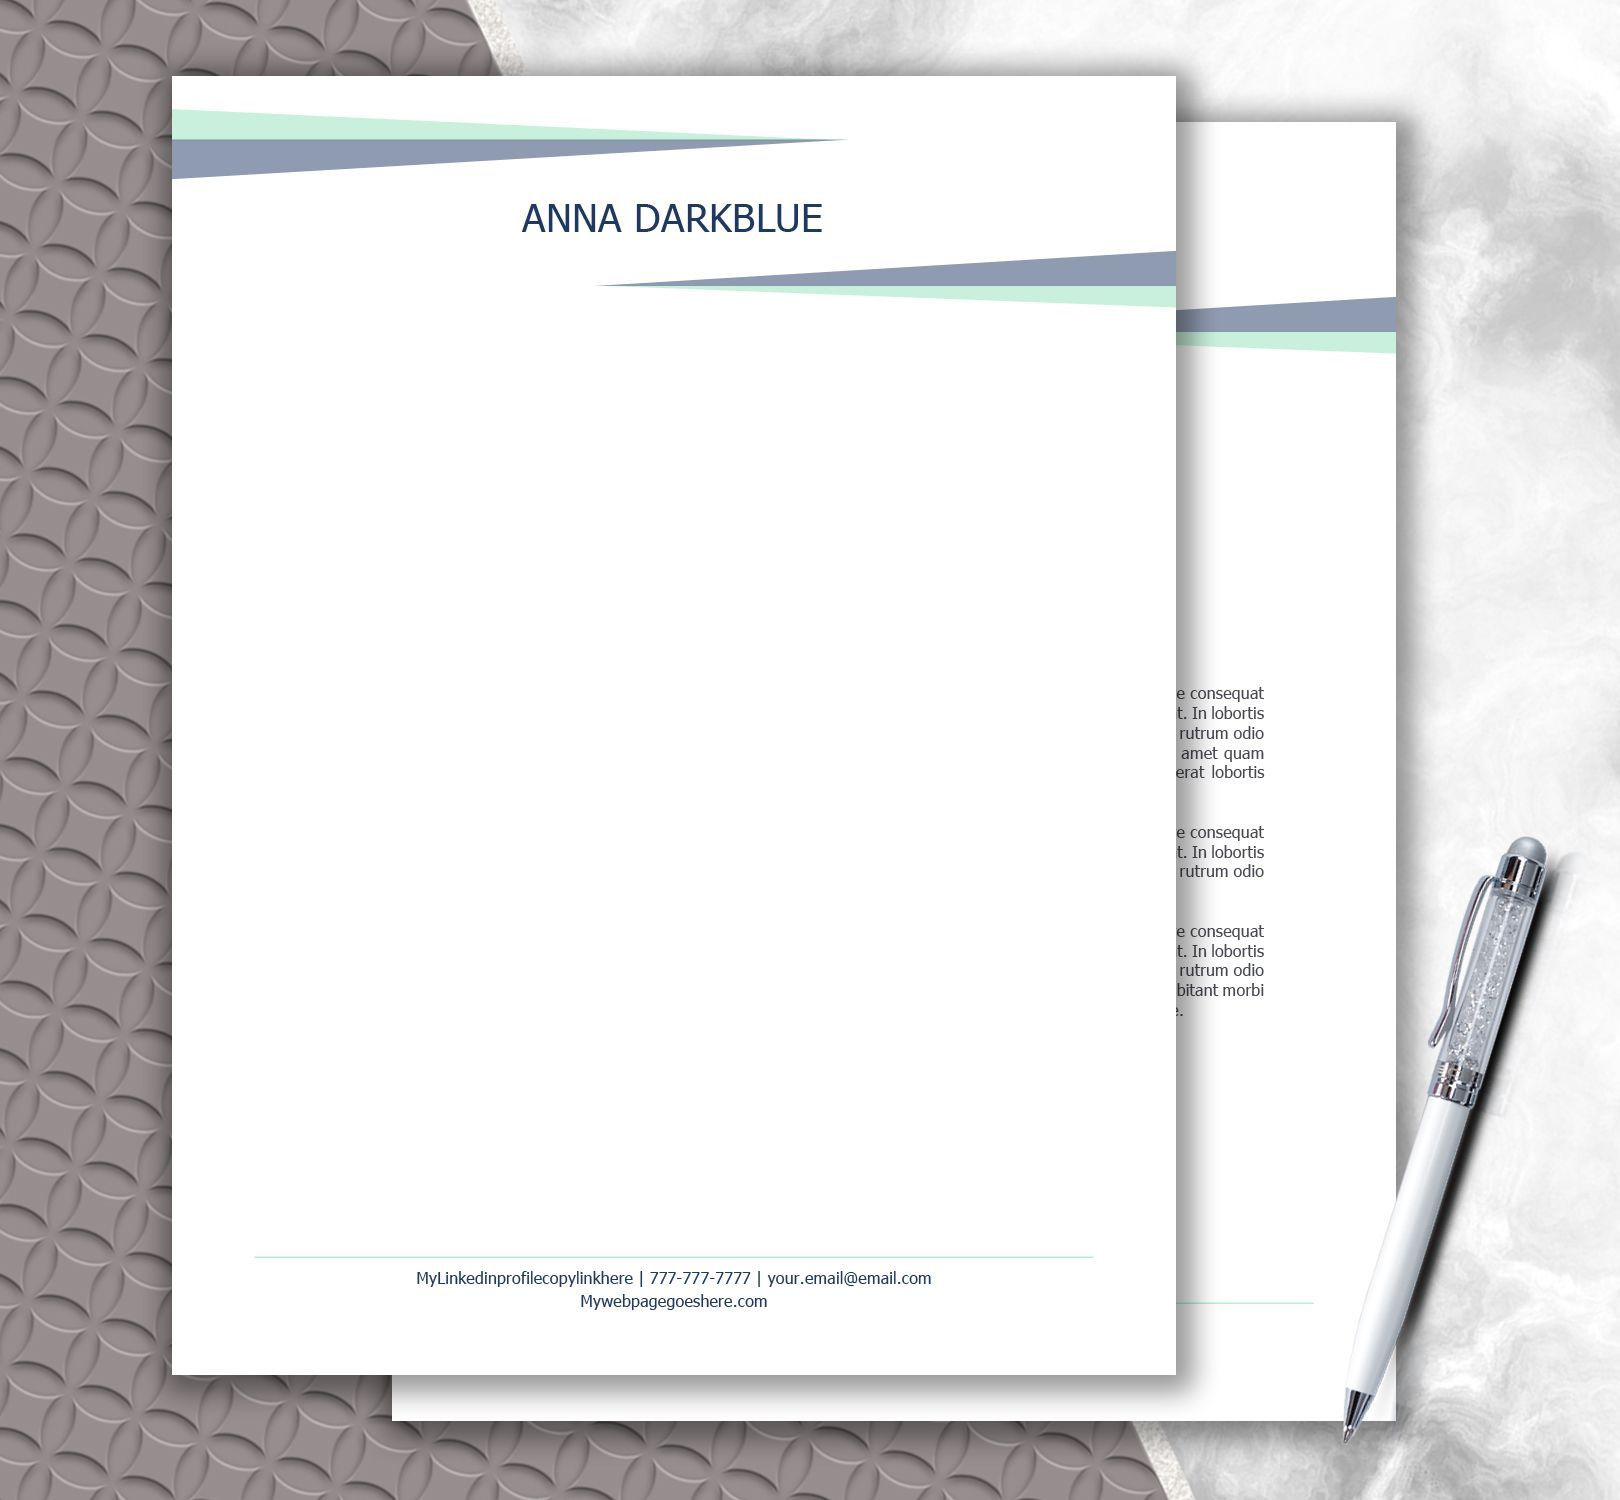 003 Unforgettable Letterhead Format In Word 2007 Free Download Photo  Company TemplateFull